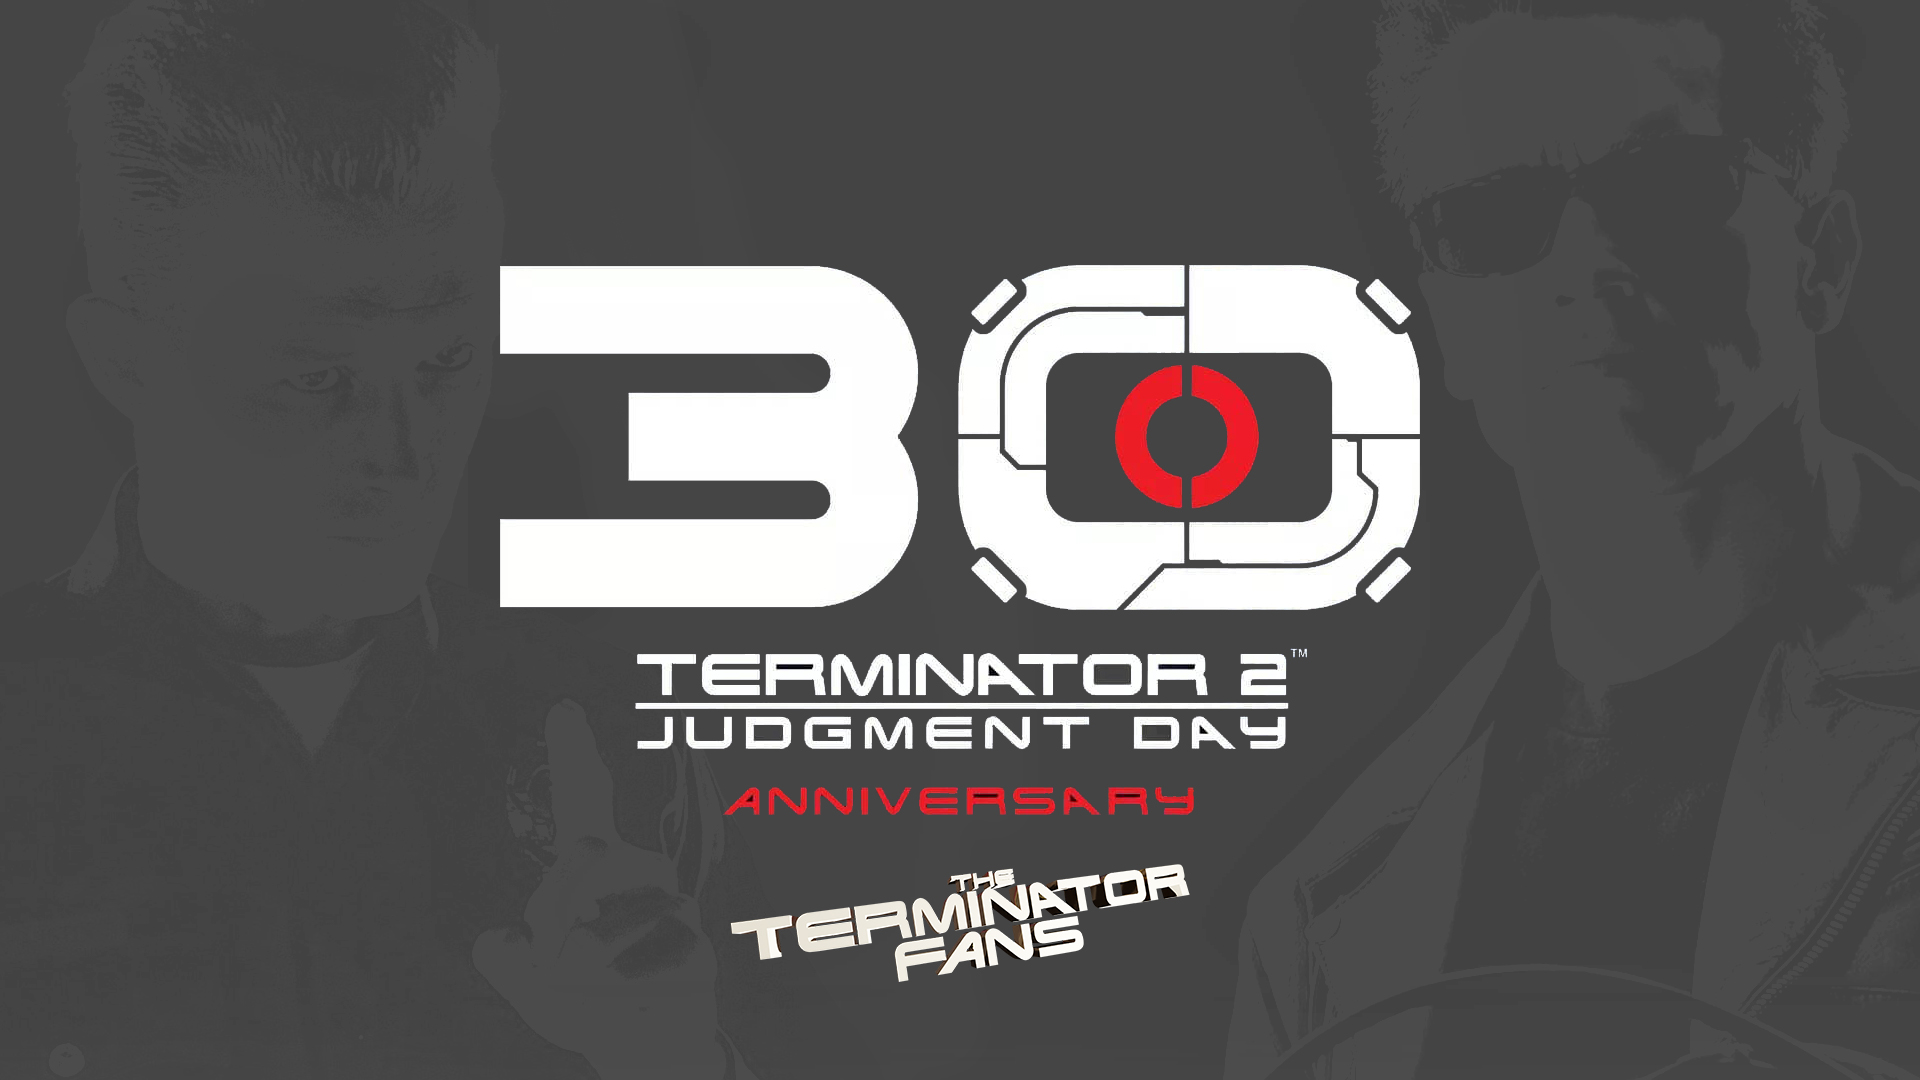 Terminator 2: Judgment Day 30th Anniversary Logo by STUDIOCANAL